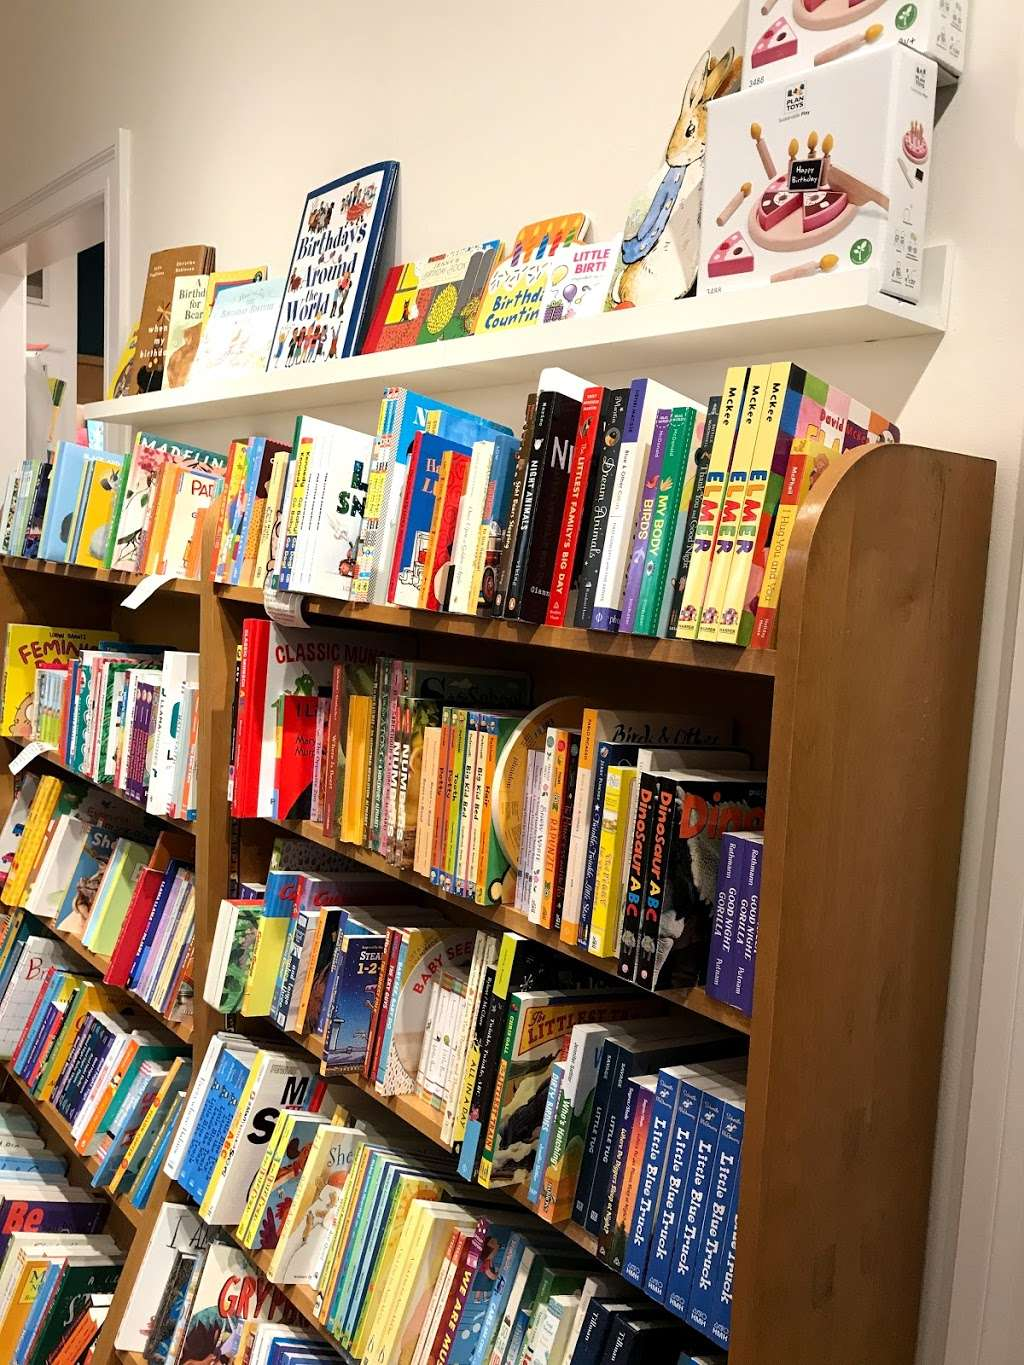 Little City Books - book store  | Photo 10 of 10 | Address: 100 Bloomfield St, Hoboken, NJ 07030, USA | Phone: (201) 626-7323